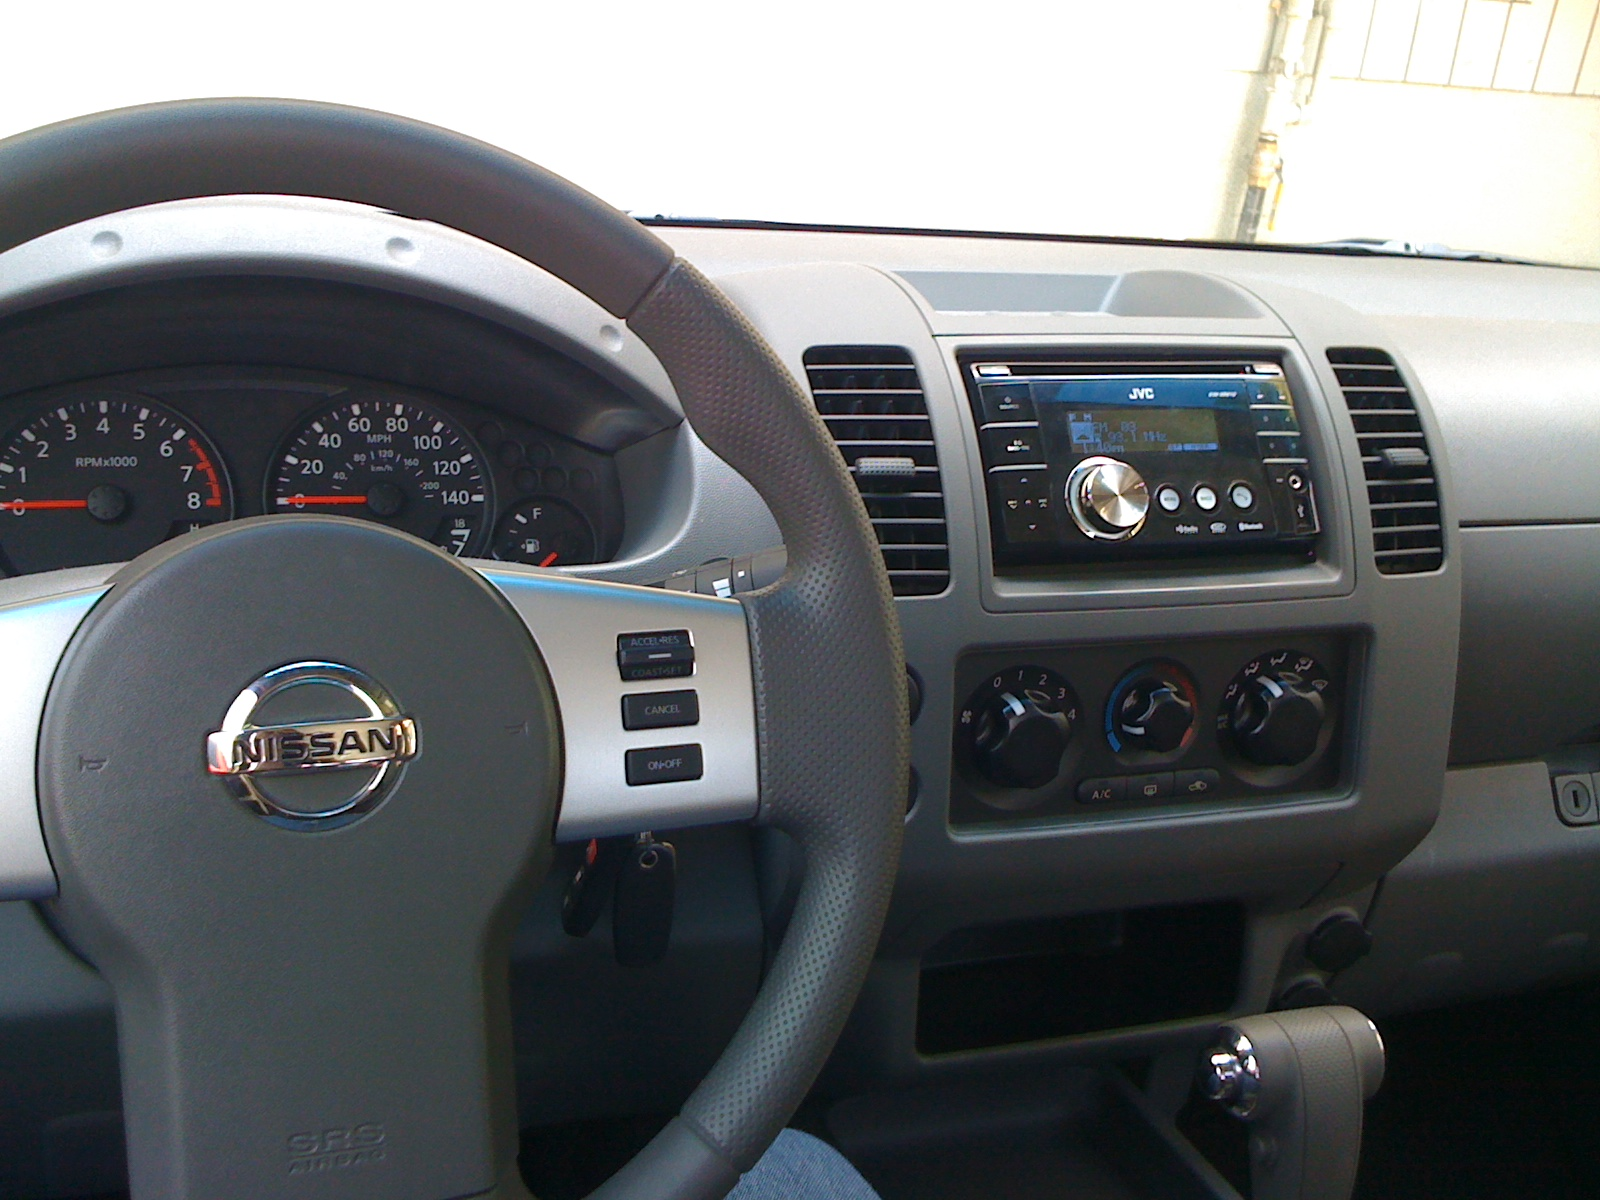 D Pathfinder Audio Phone Cruise Control Steering Wheel Control Installed Picture on Nissan Frontier Radio Wiring Diagram